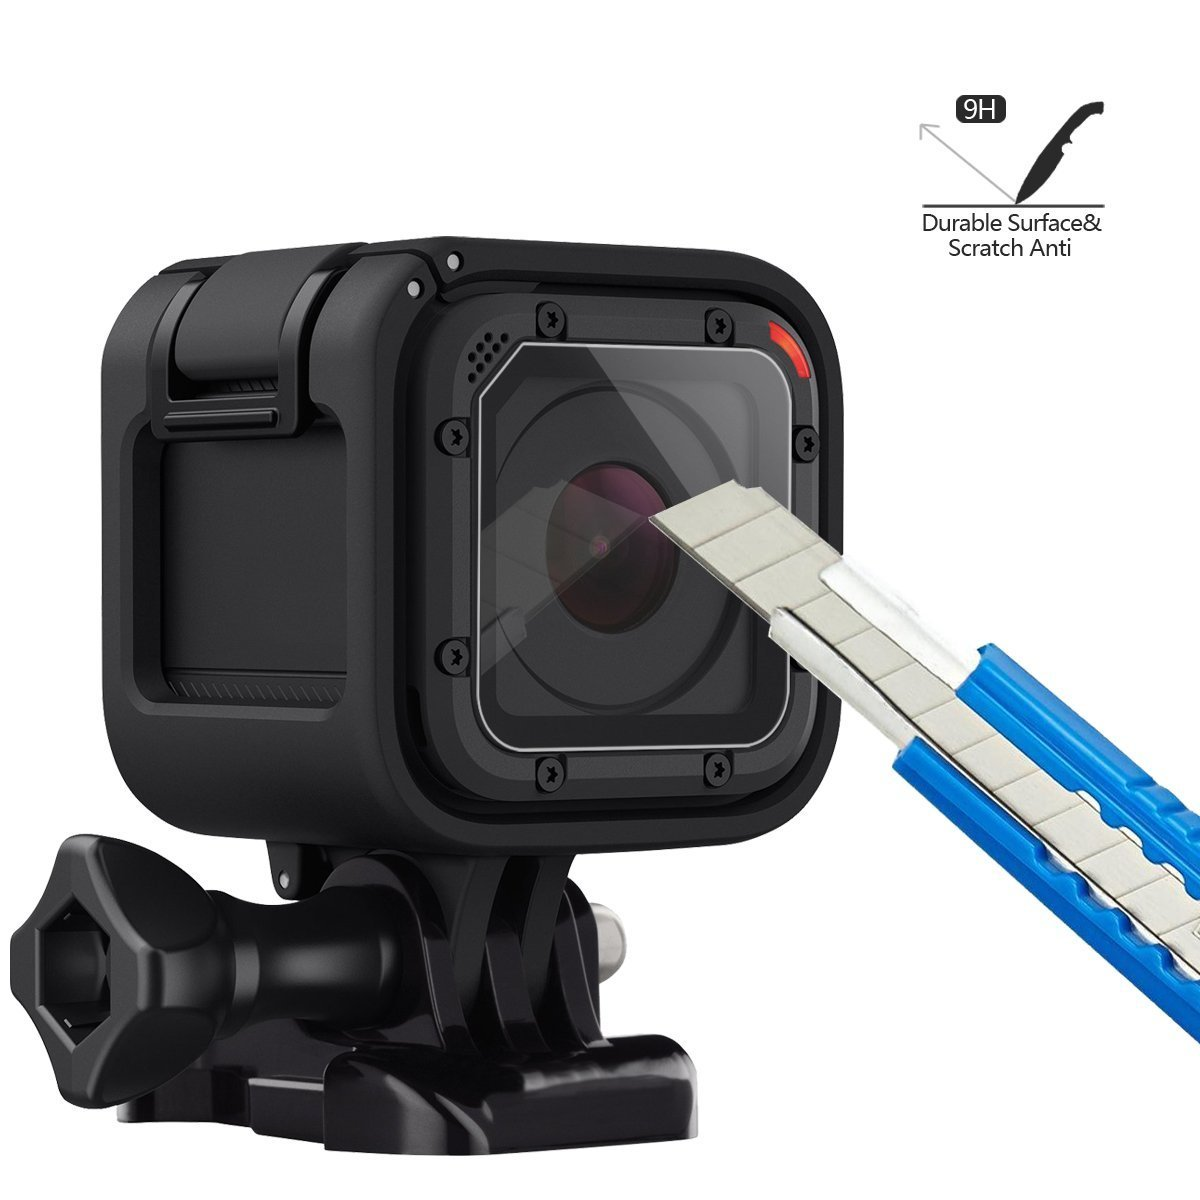 MyArmor Ultra-Clear Tempered Glass Screen Protector 0.33mm Hard Scratch-resistant Camera Lens Film (Pack of 3) with Soft Microfiber Cleaning Cloth for GoPro Hero 4/5 Session Camera